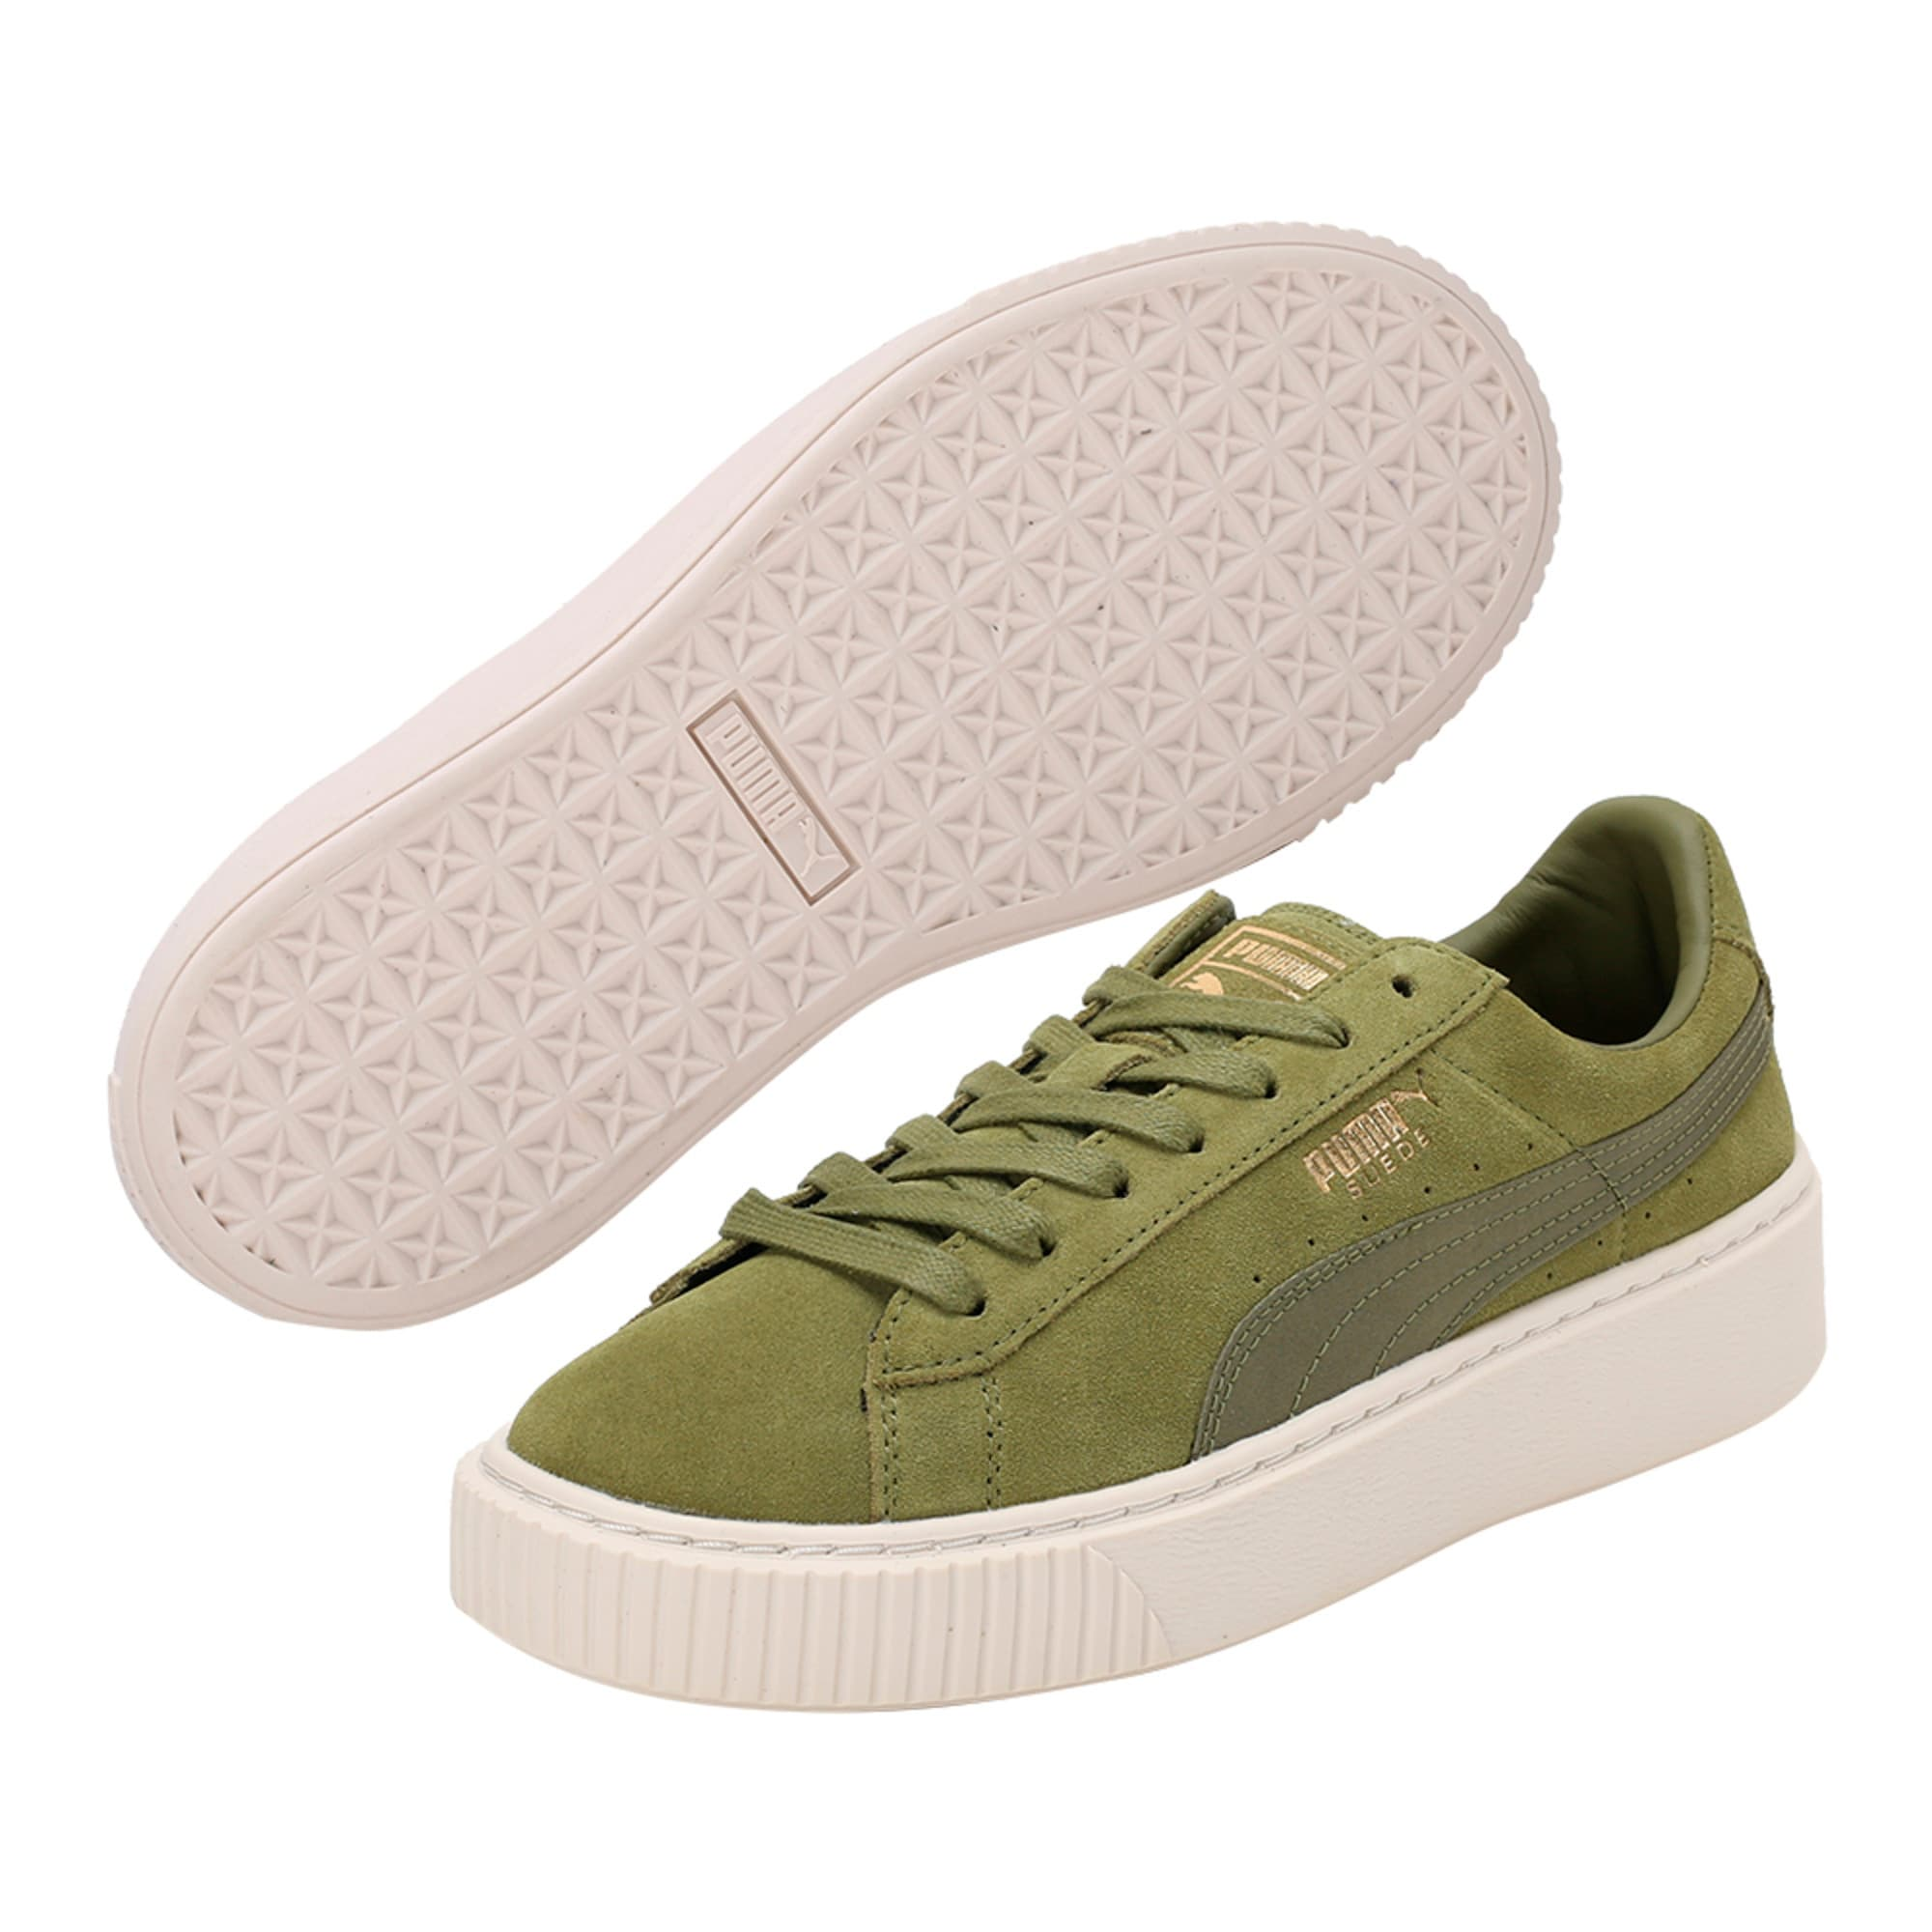 Thumbnail 6 of Suede Platform Satin Women's Trainers, Olive Branch-Whisper- Gold, medium-IND